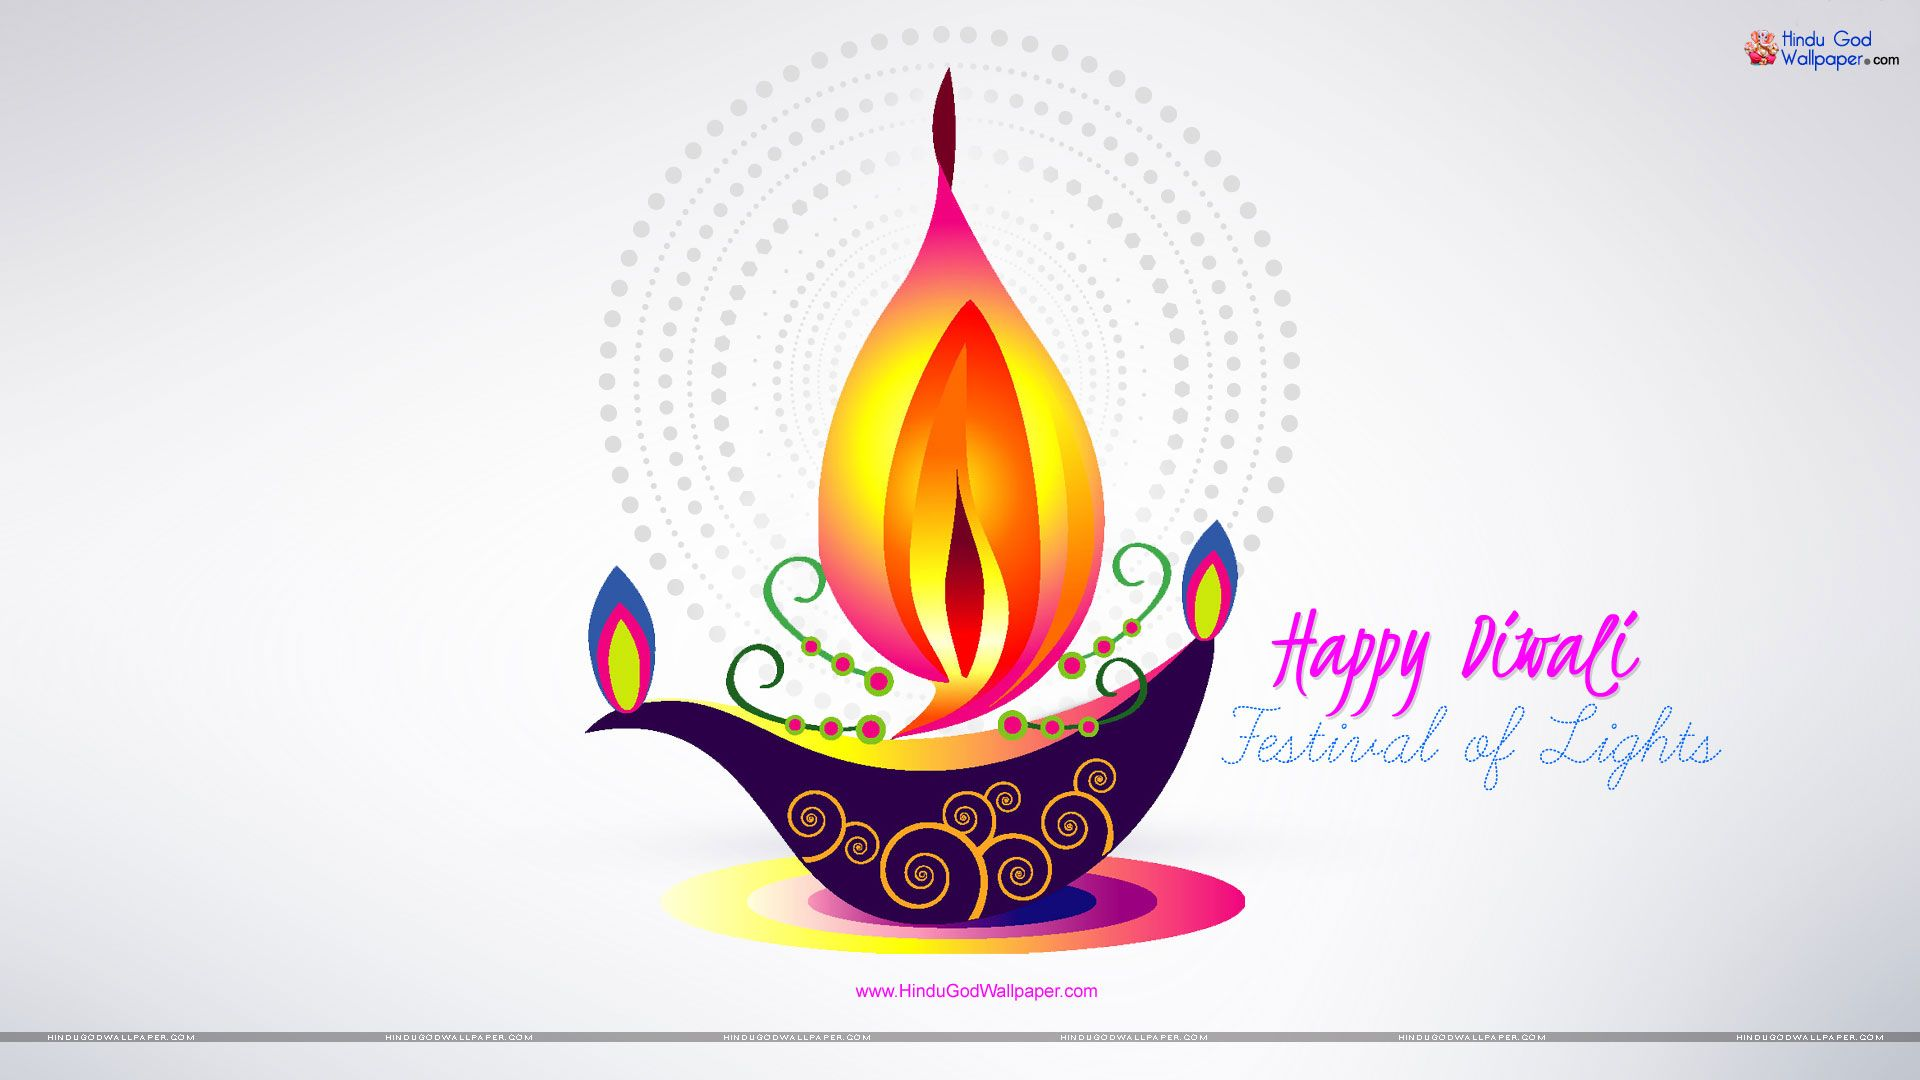 diwali wallpapers 1080p hd widescreen download | diwali wallpapers